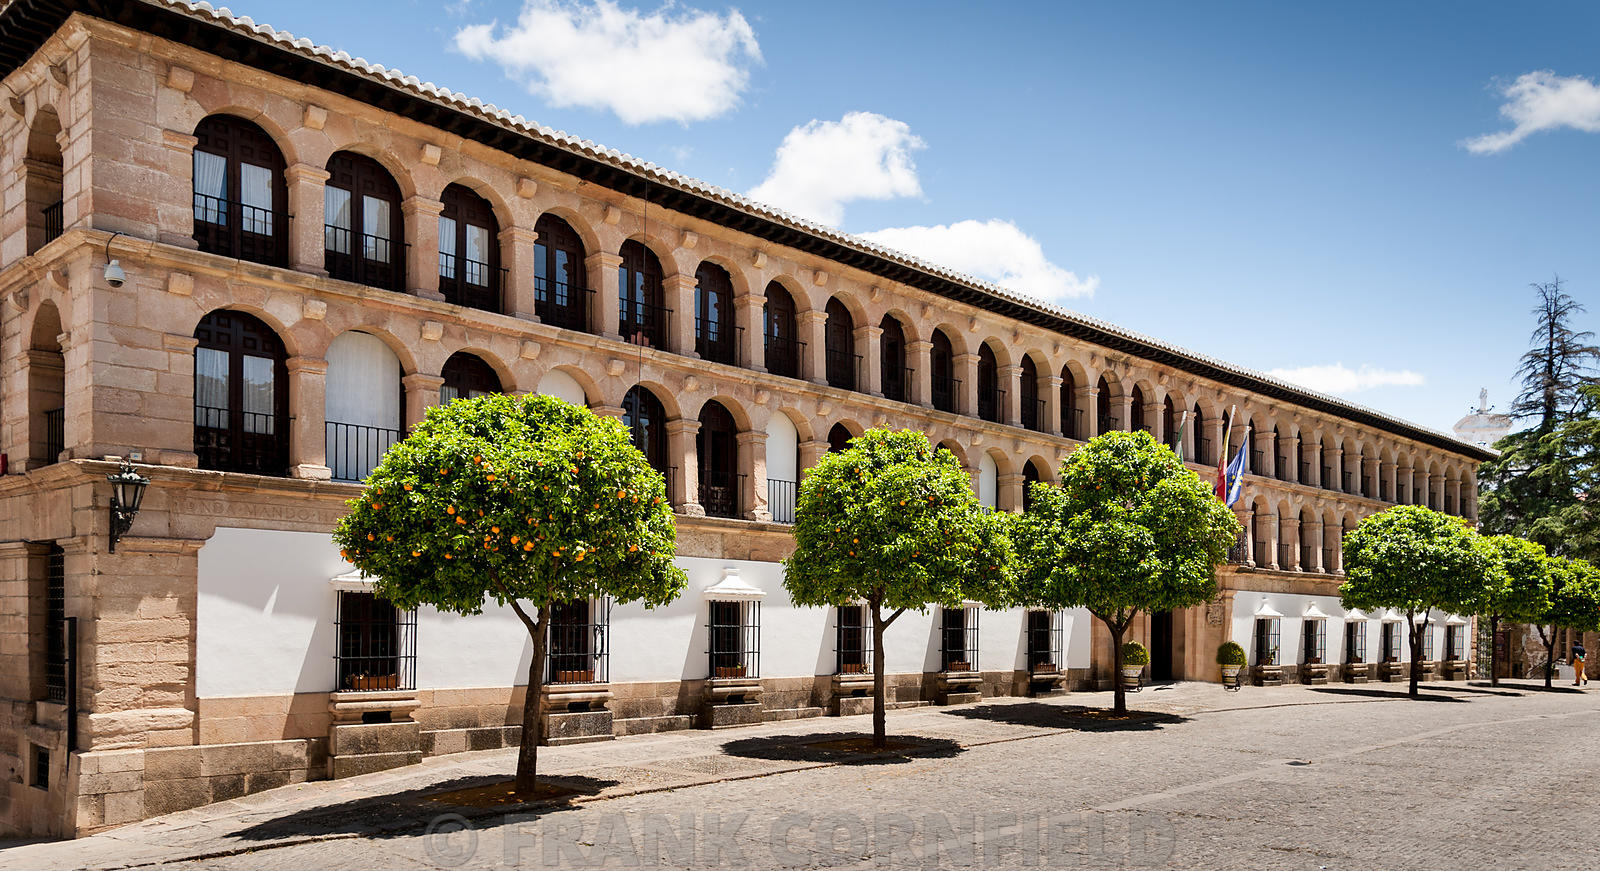 Orange trees outside City Hall Duchess of Parcent Square Ronda Andalusia Spain